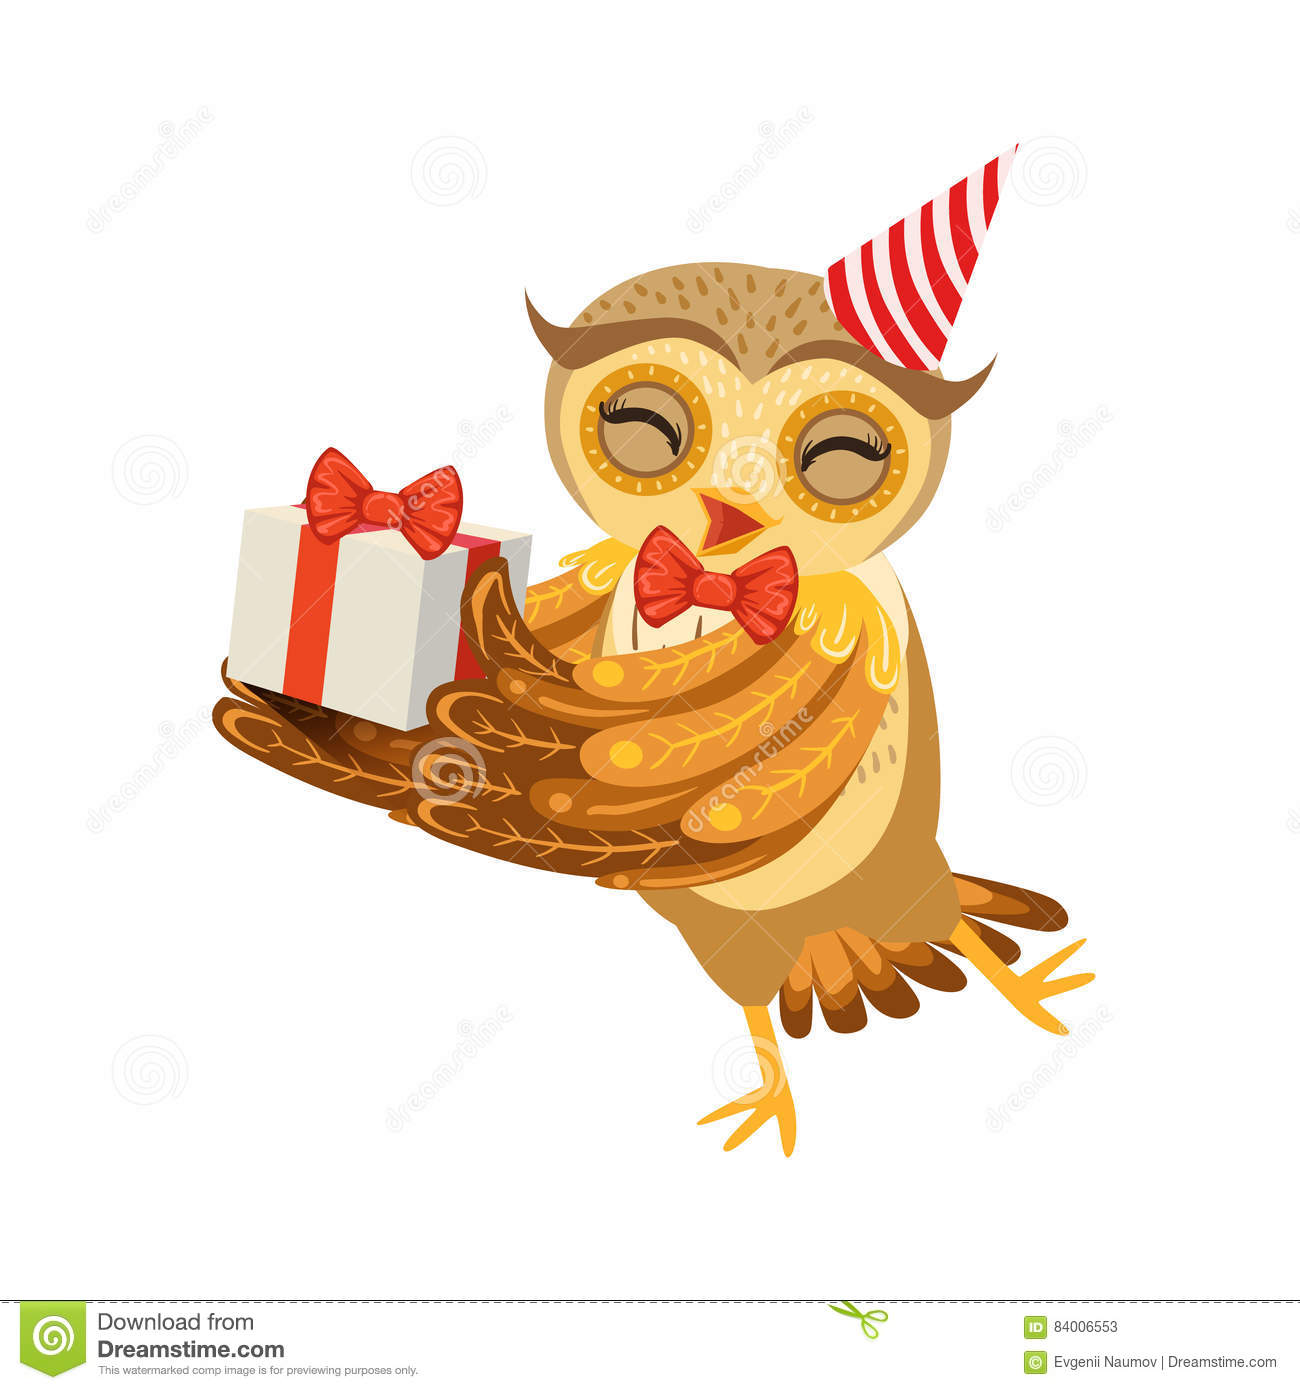 Owl And Birthday Present Cute Cartoon Character Emoji With Forest Bird Showing Human Emotions Behavior